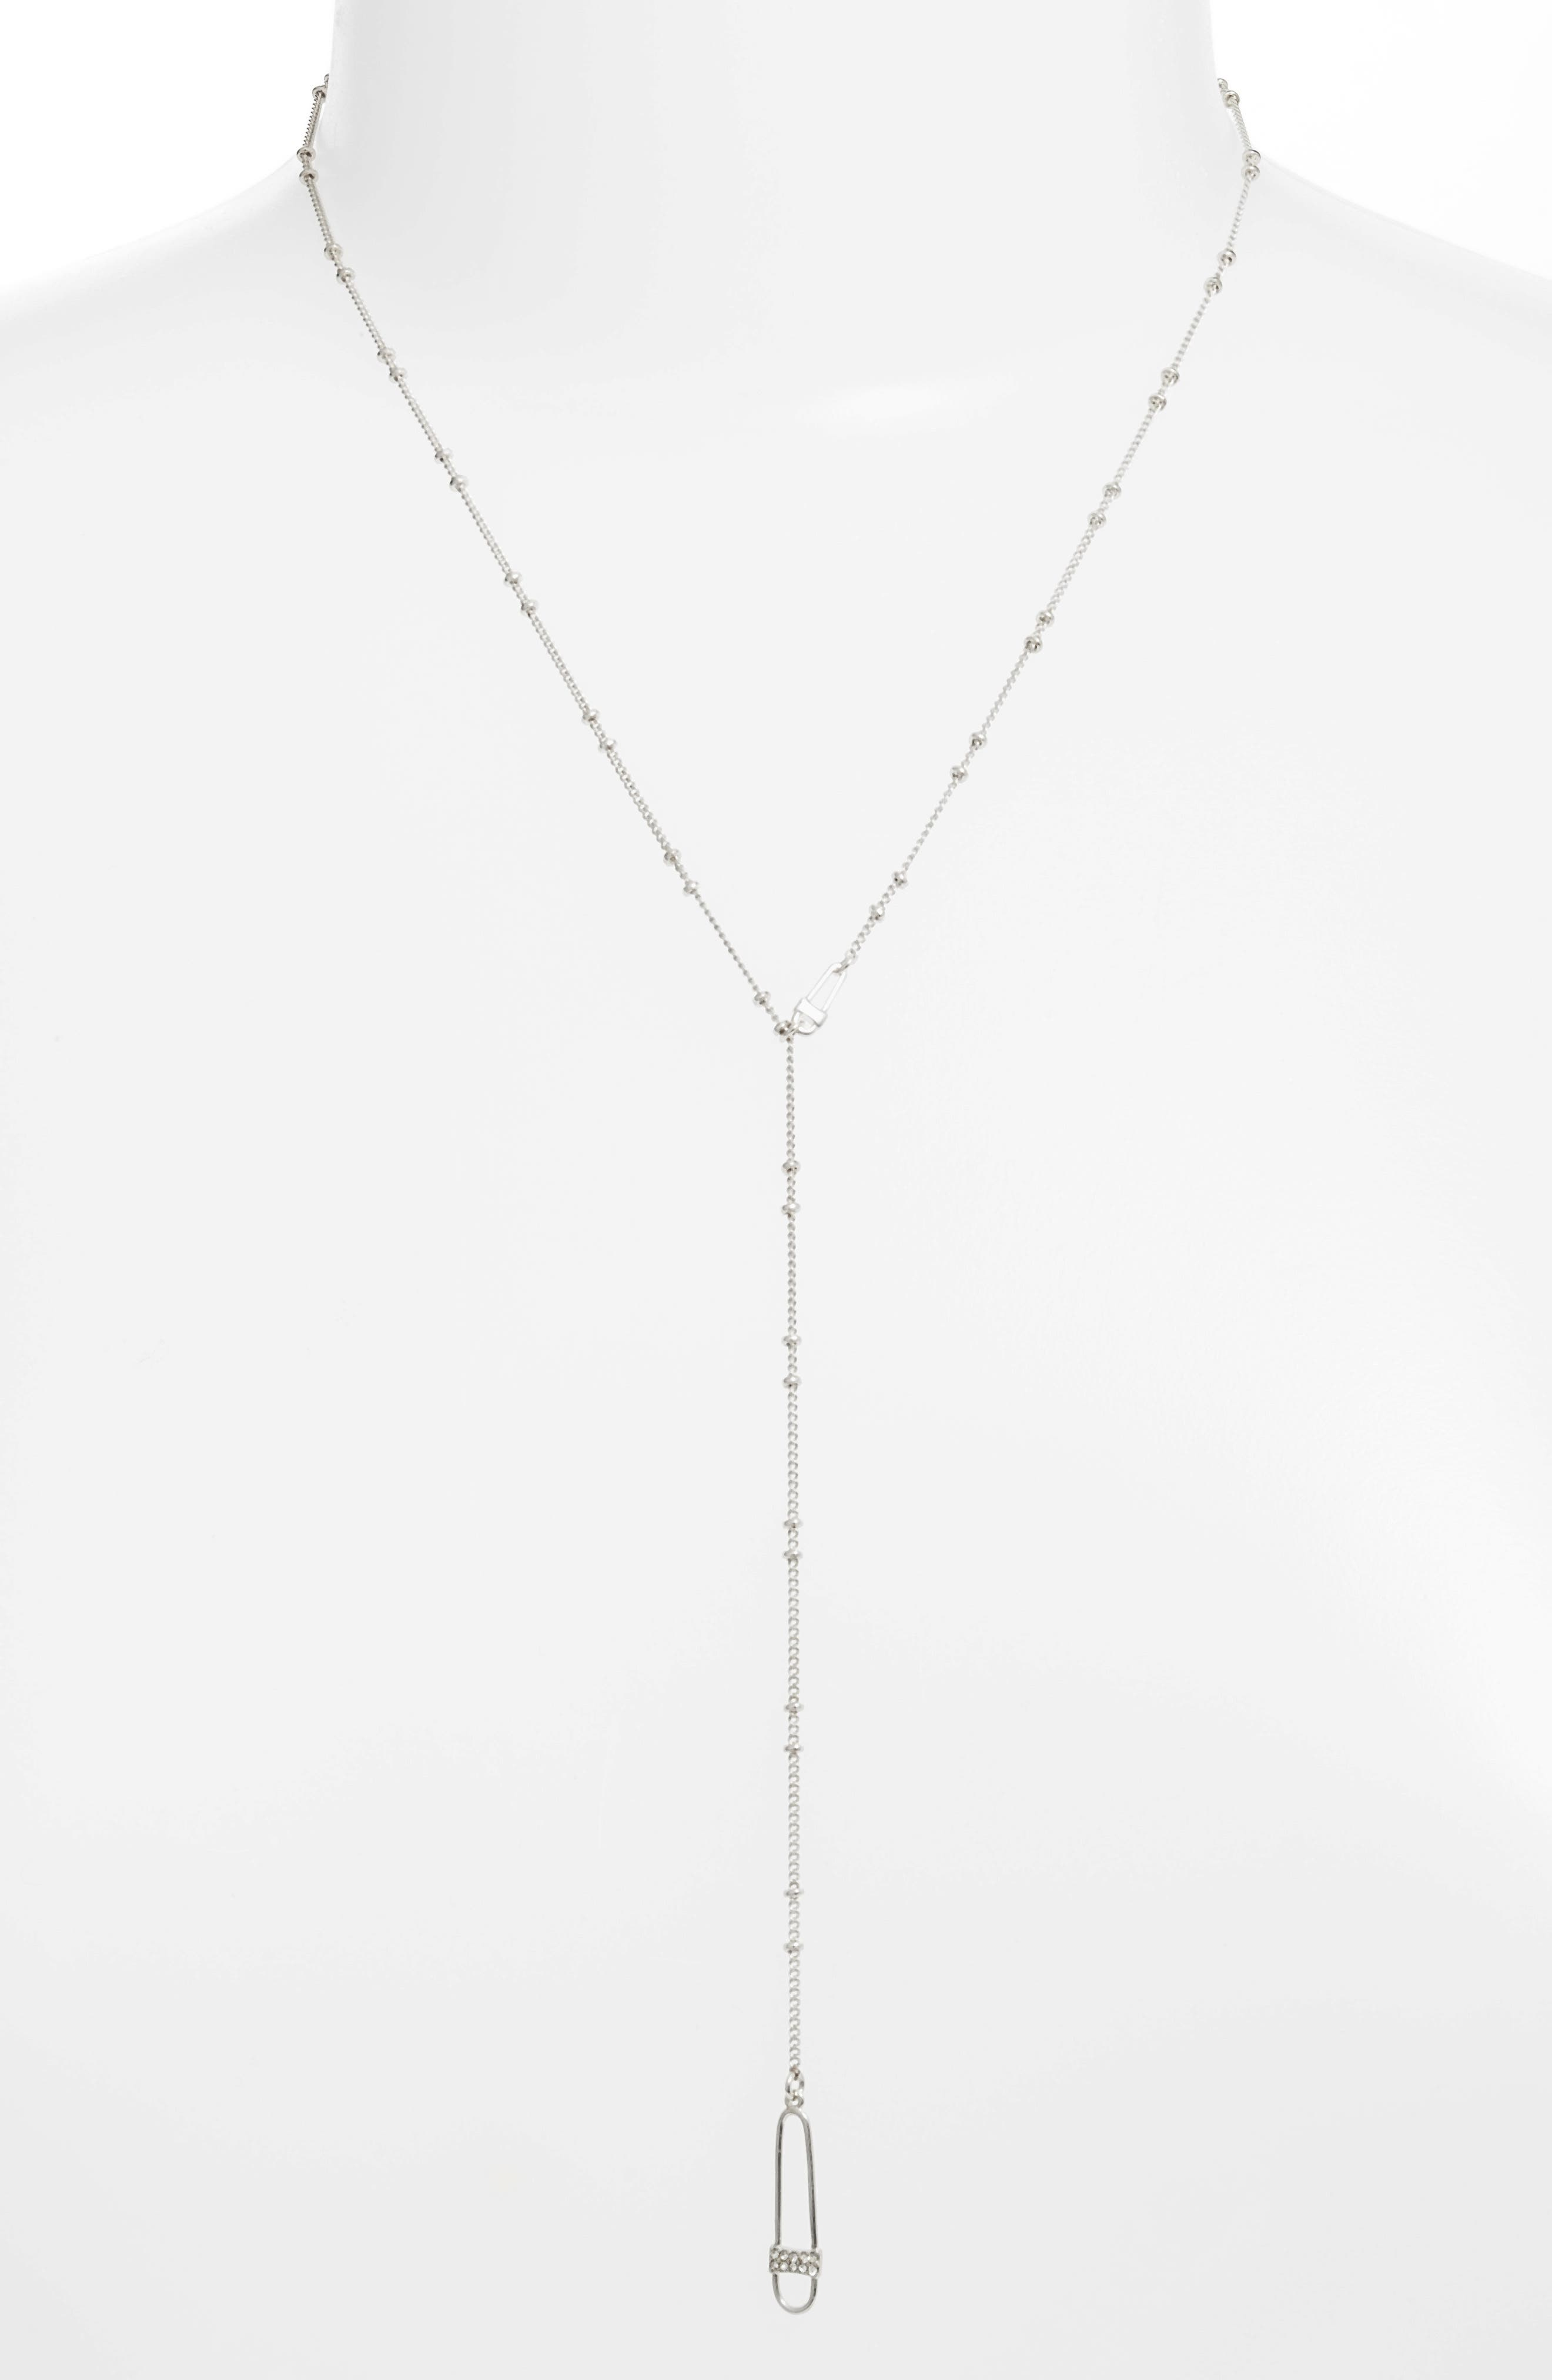 Safety Pin Lariat Necklace,                             Alternate thumbnail 2, color,                             040